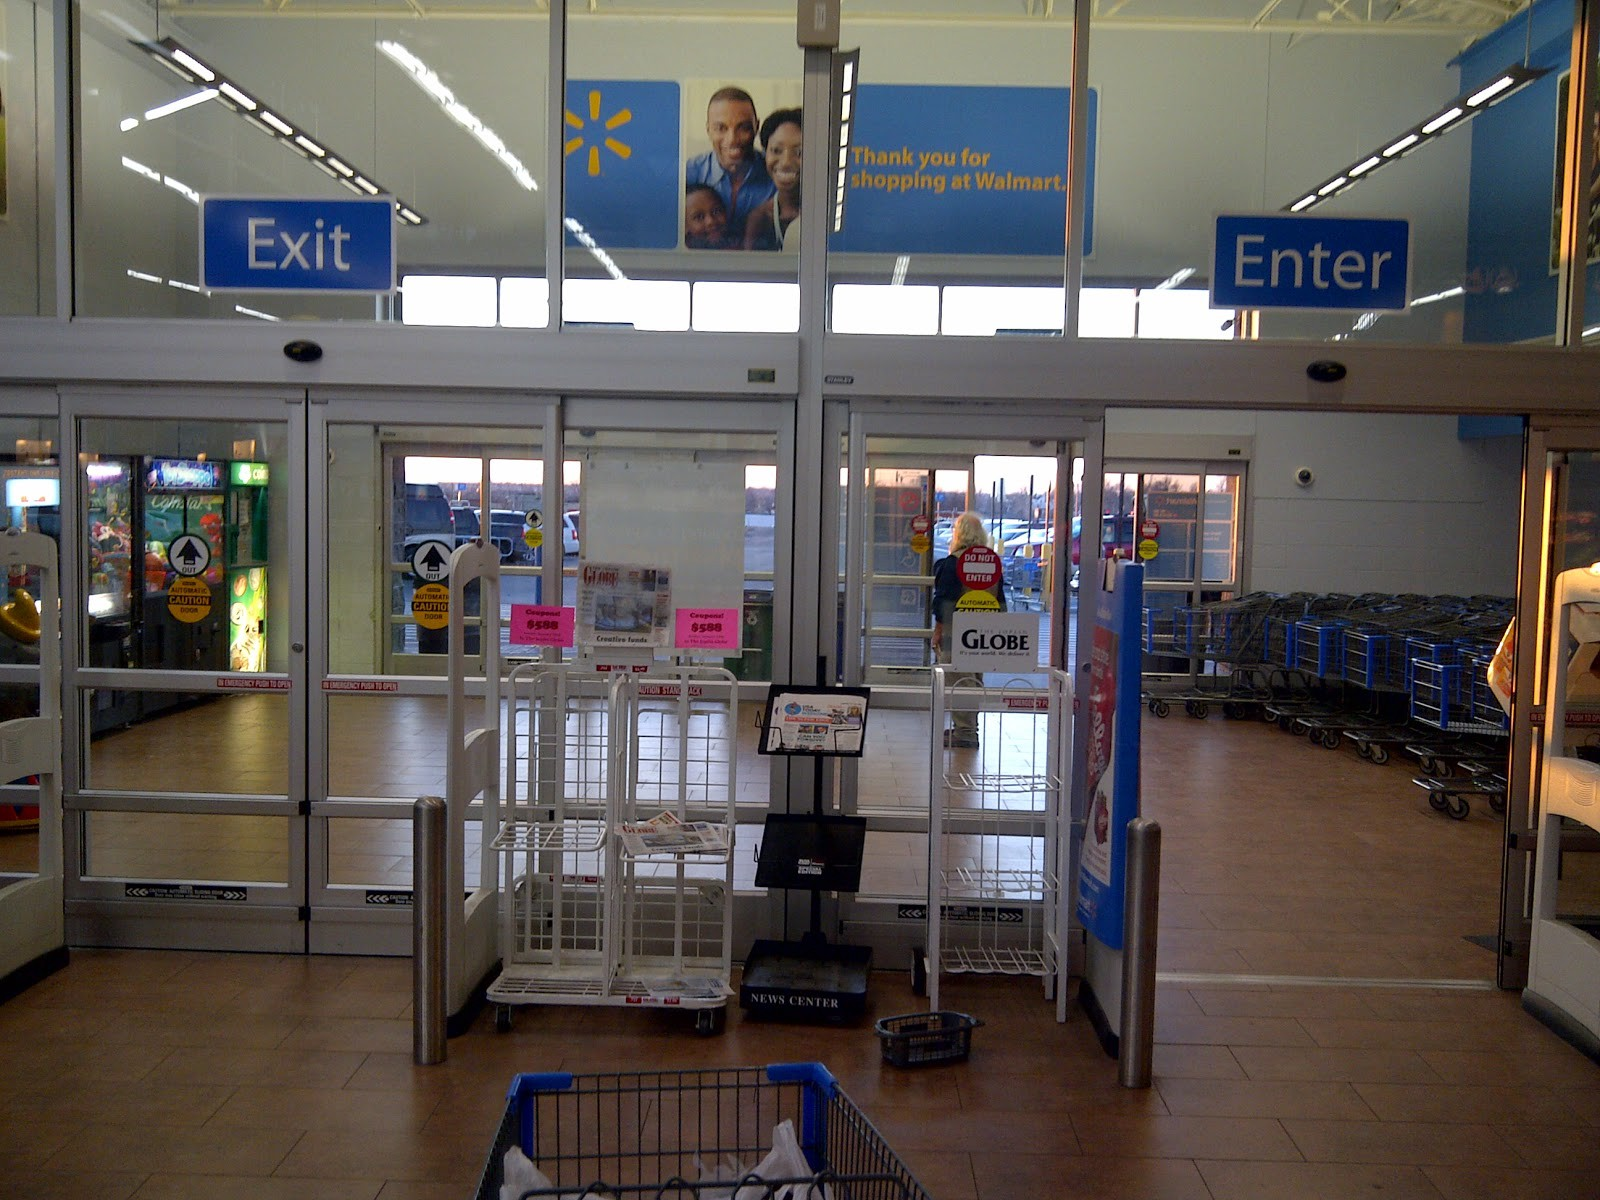 People Of Walmart: The Entry Doors | by The Thinkers' Temple | Medium